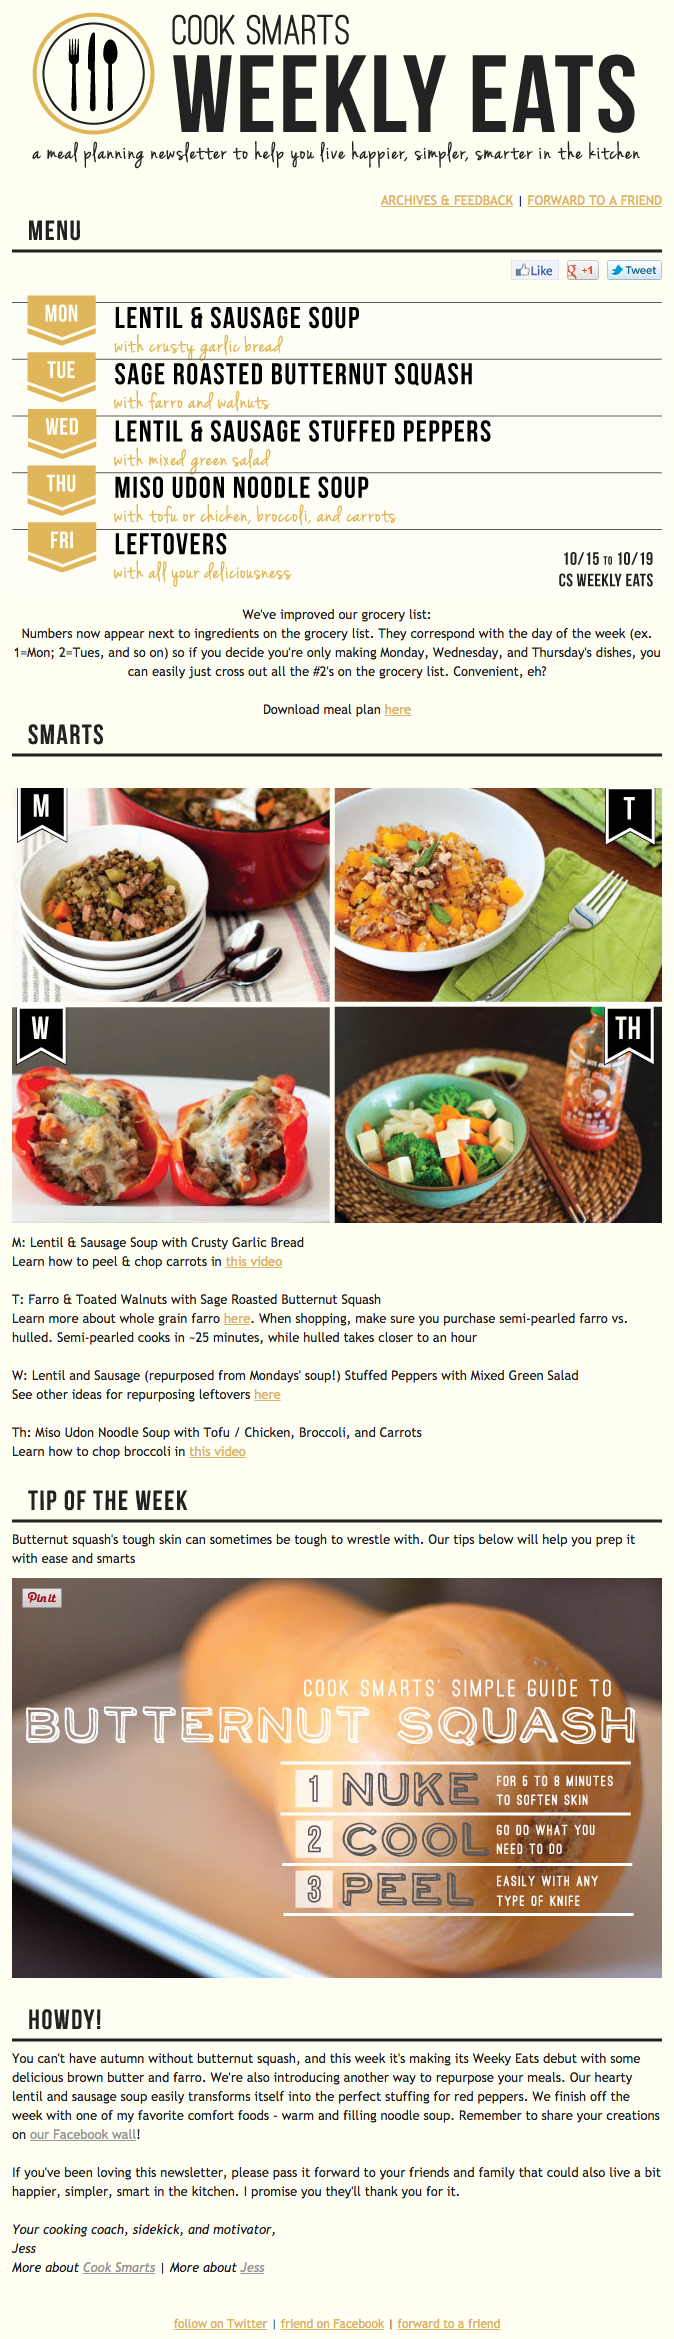 Example of an email marketing campaign from Cook Smarts on Weekly Eats